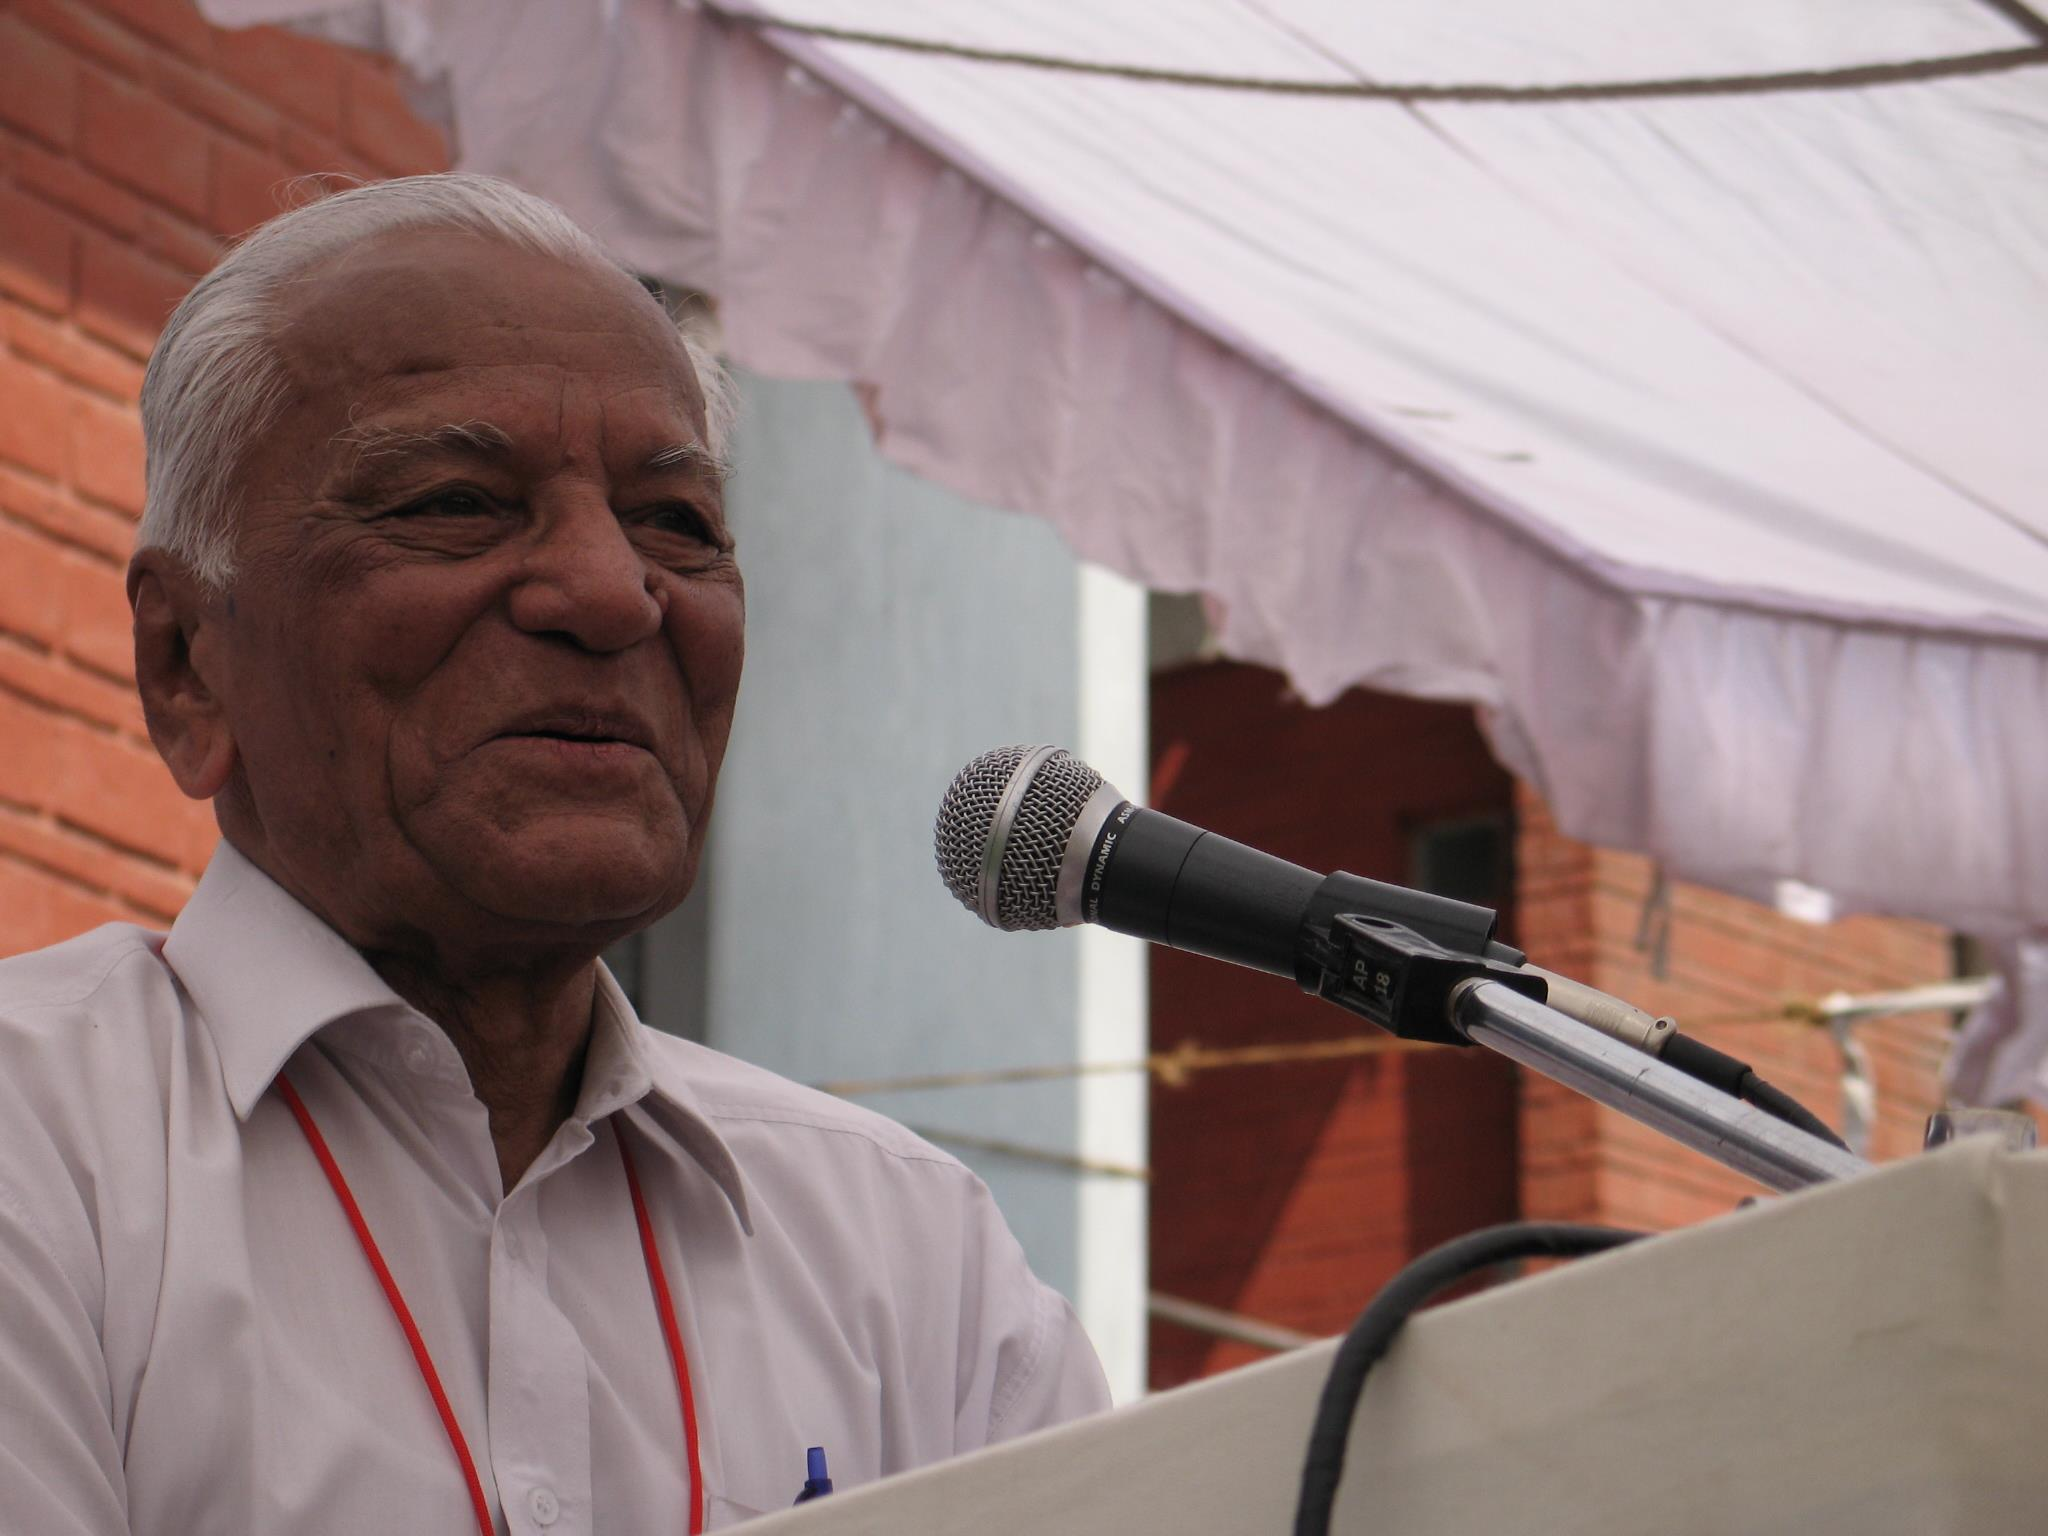 Remembering Y.V. Chavan, a Strong Advocate of Working Class Unity